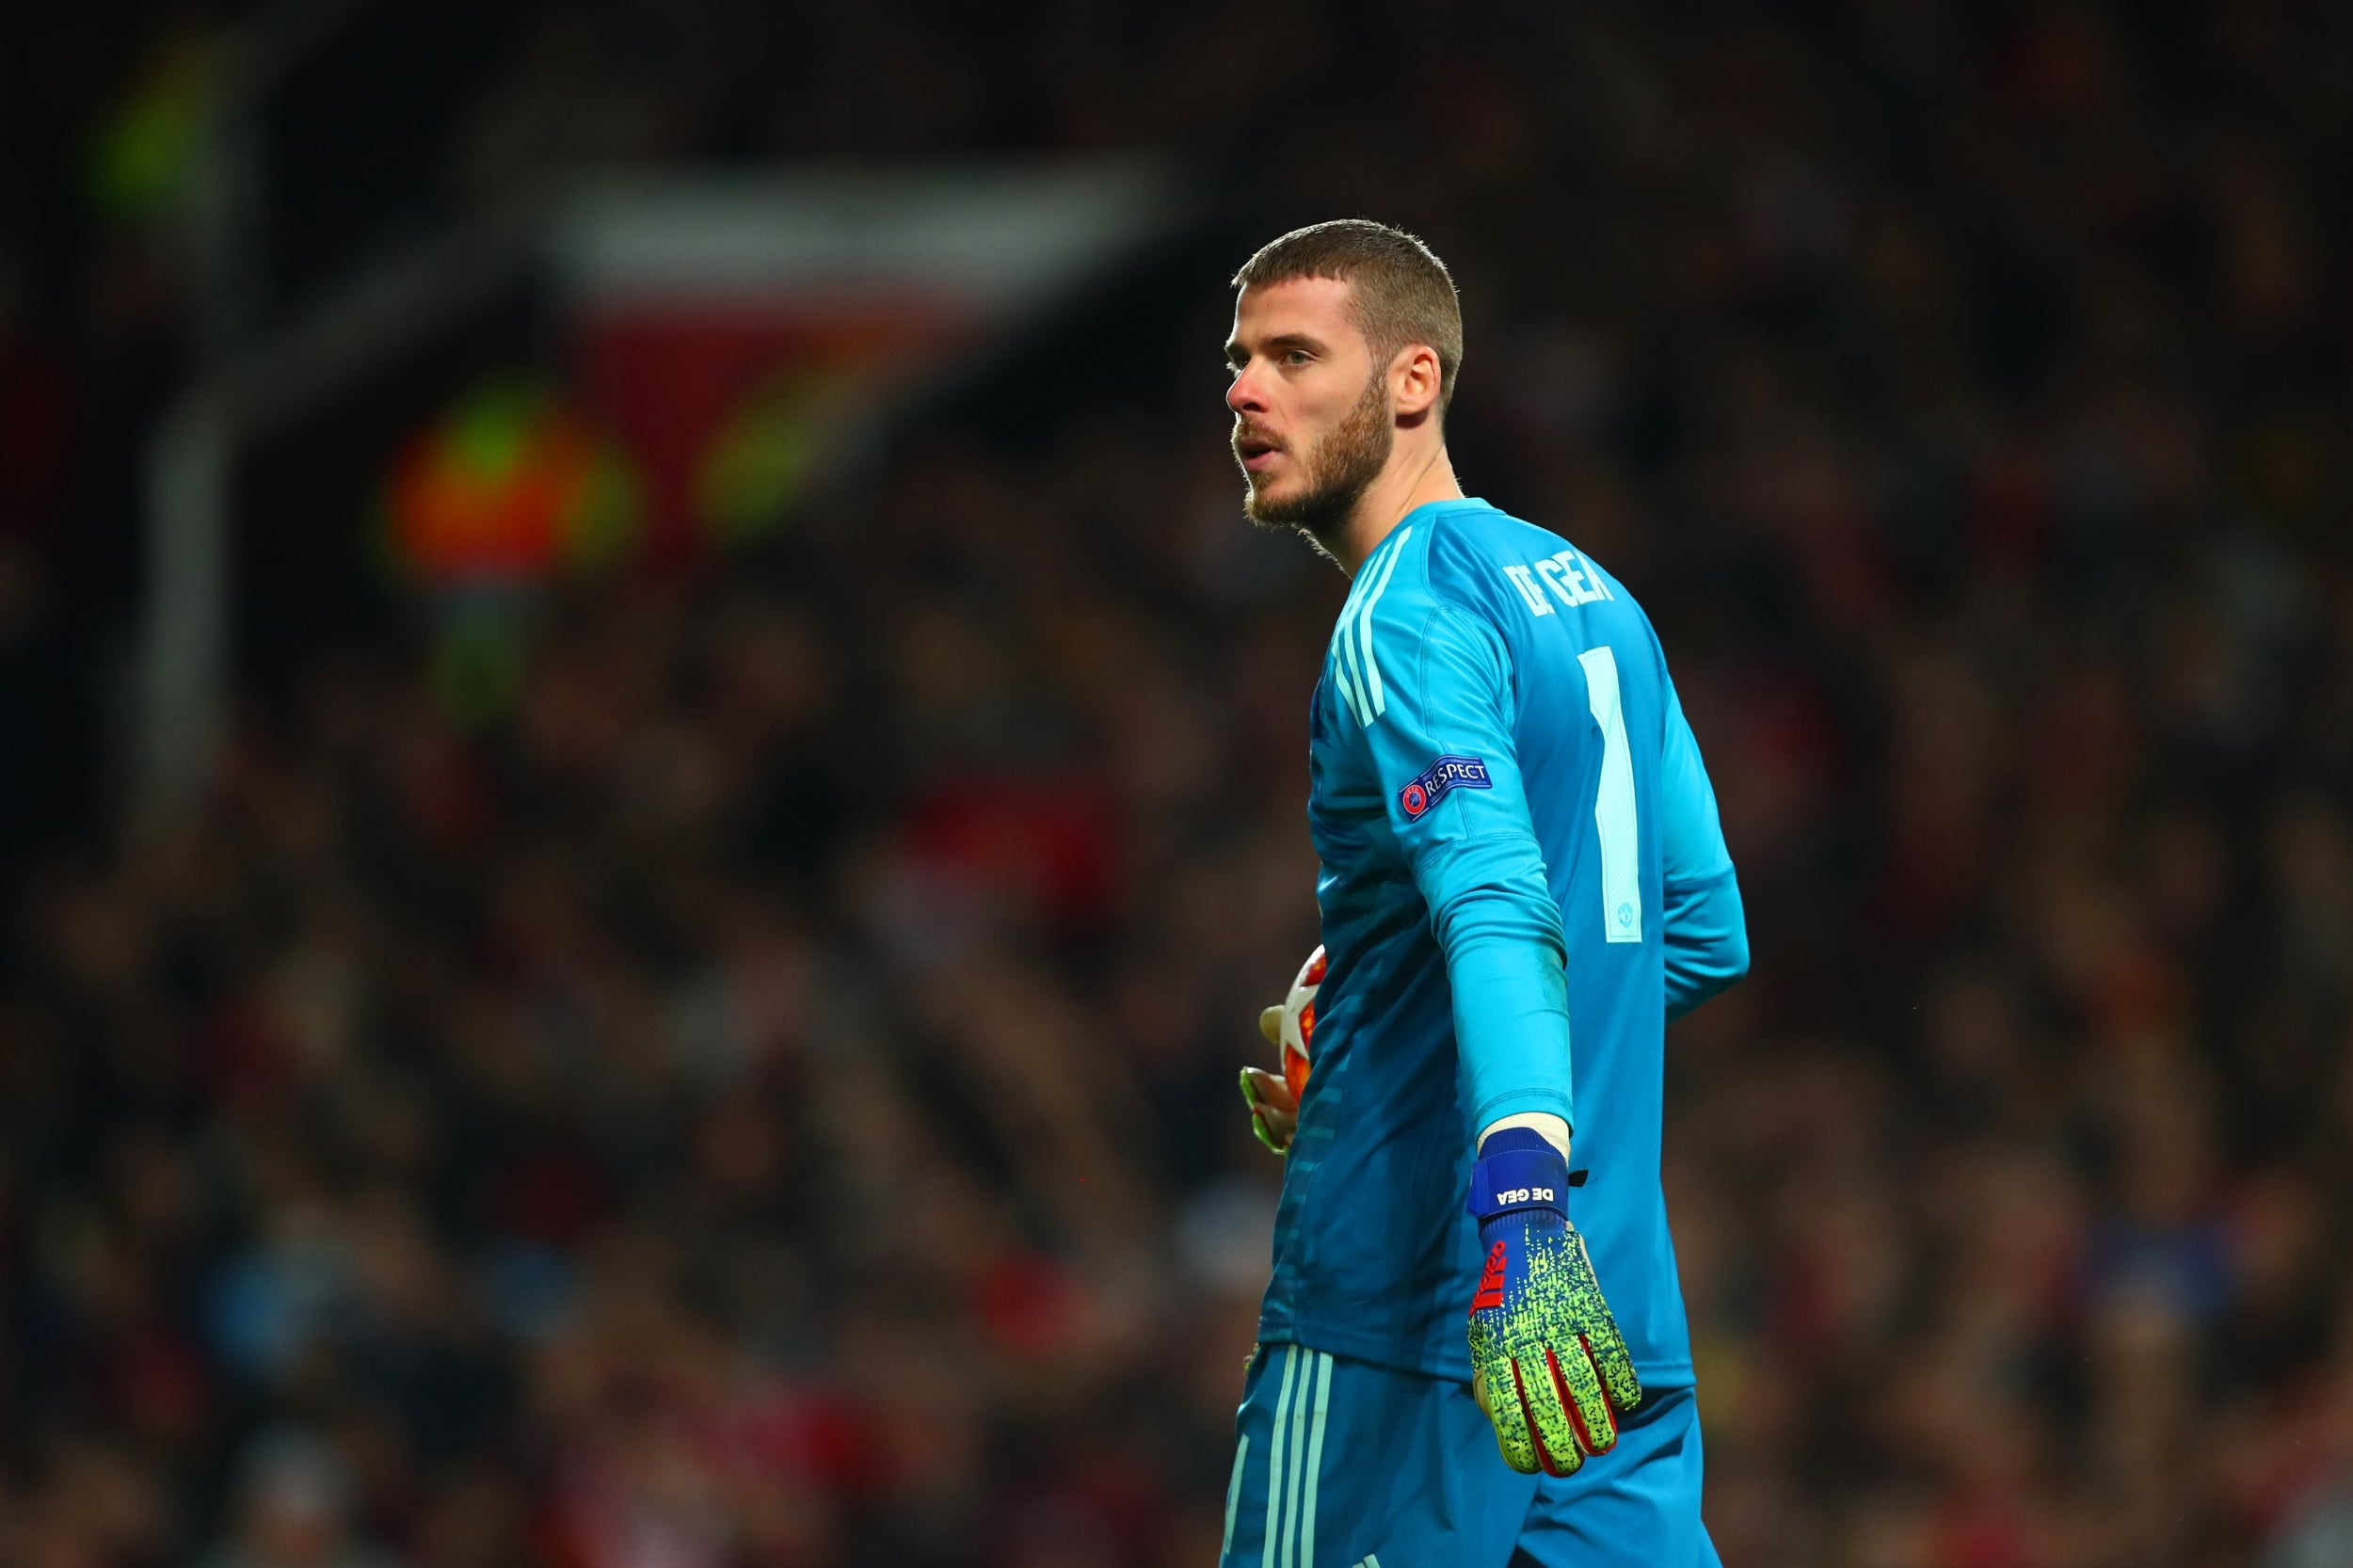 David de Gea - 8 out of 10